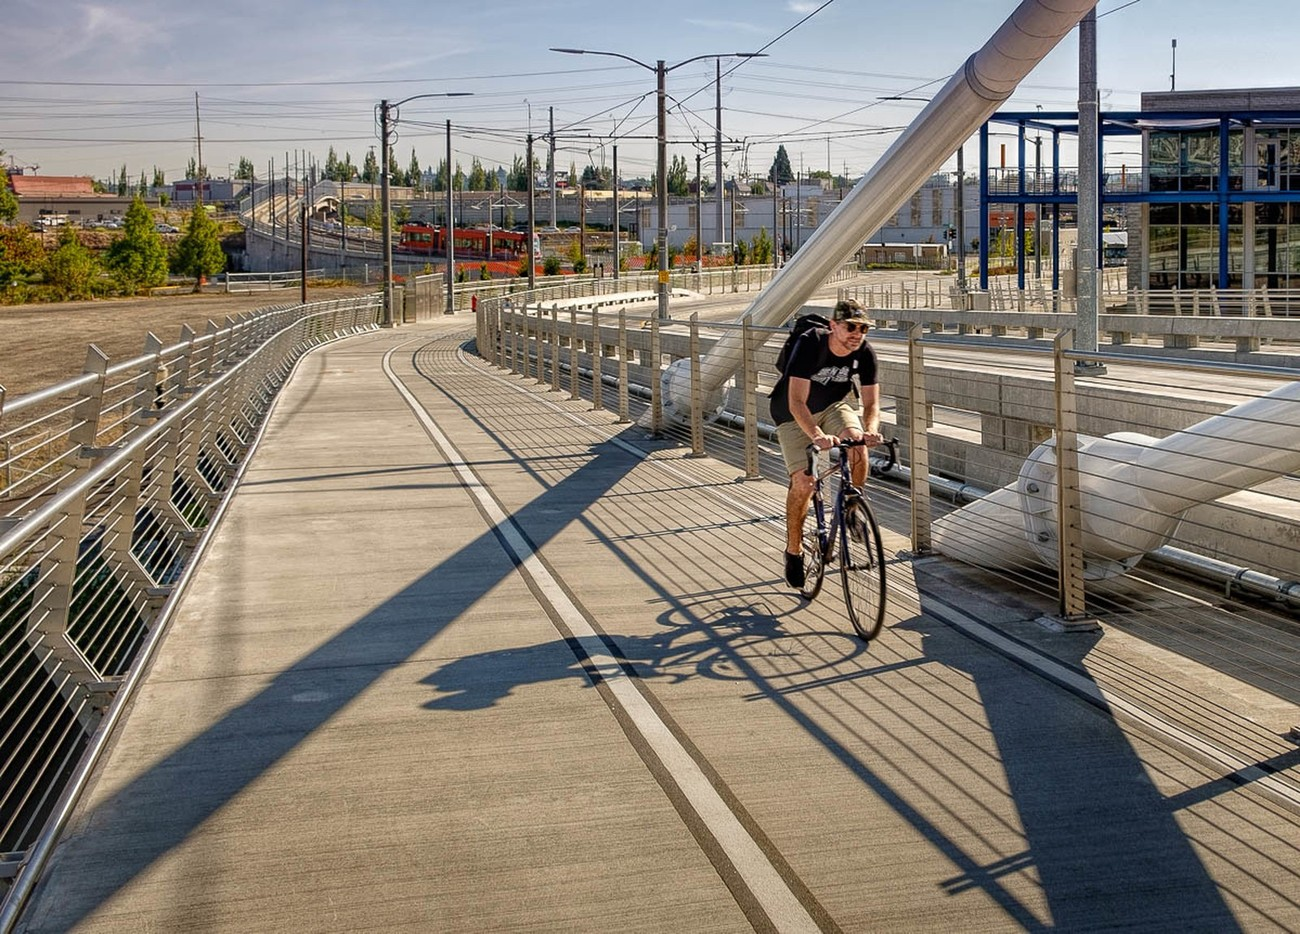 I went out today to capture the new pedestrian and rapid transit bridge in Portland called Tilikum Crossing. While there it was only fitting to photograph a cyclist as he crossed the river from east to west.